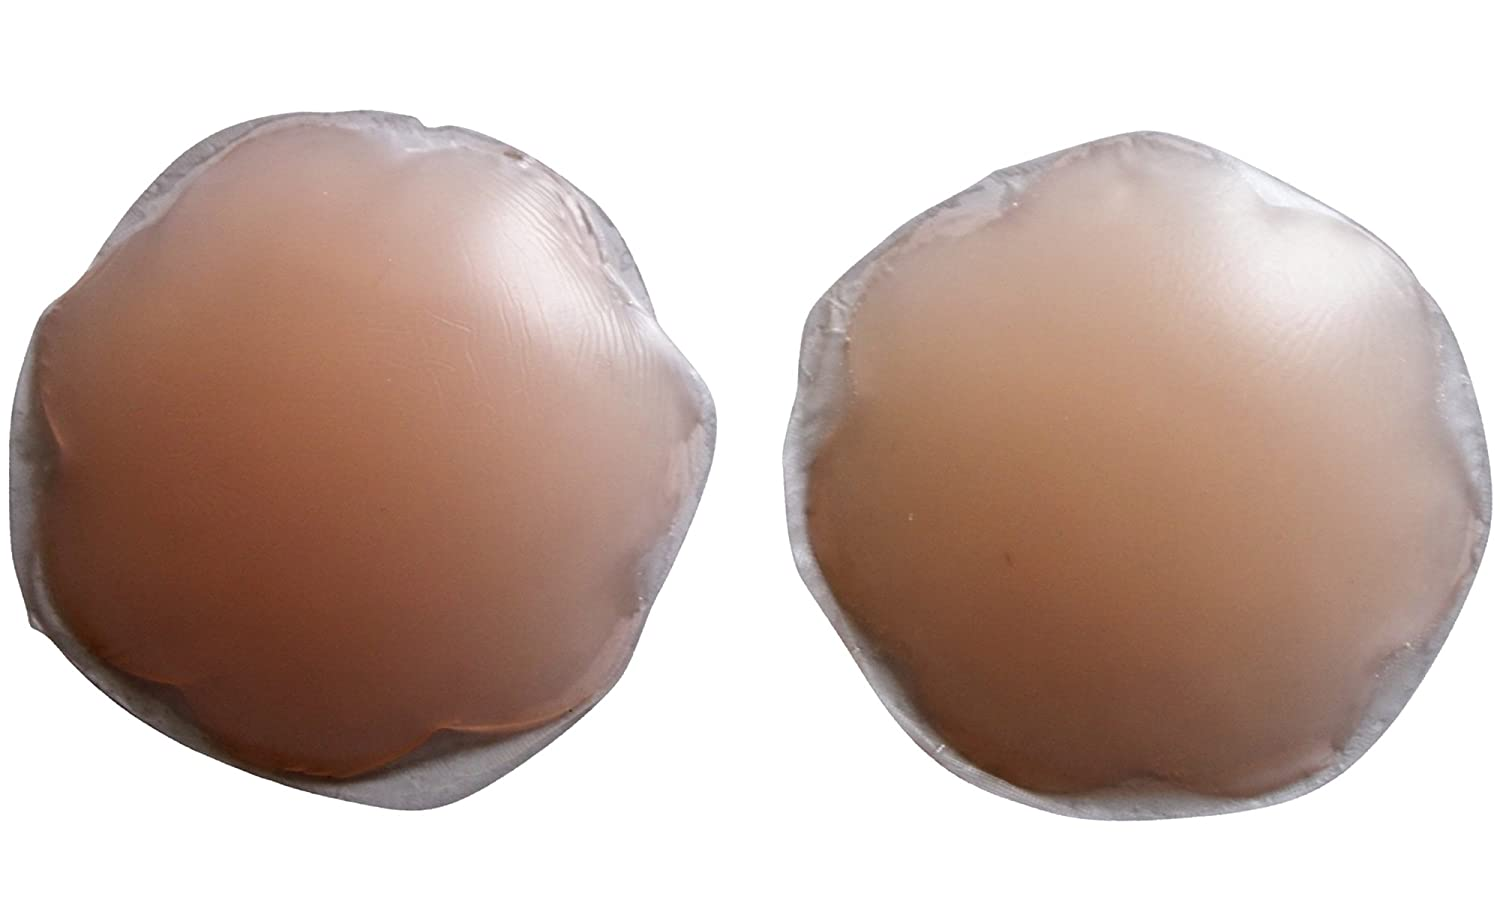 2d35ee4c26f3d Amazon.com  Flirtzy Reusable Self Adhesive Silicone Nipple Cover  Clothing